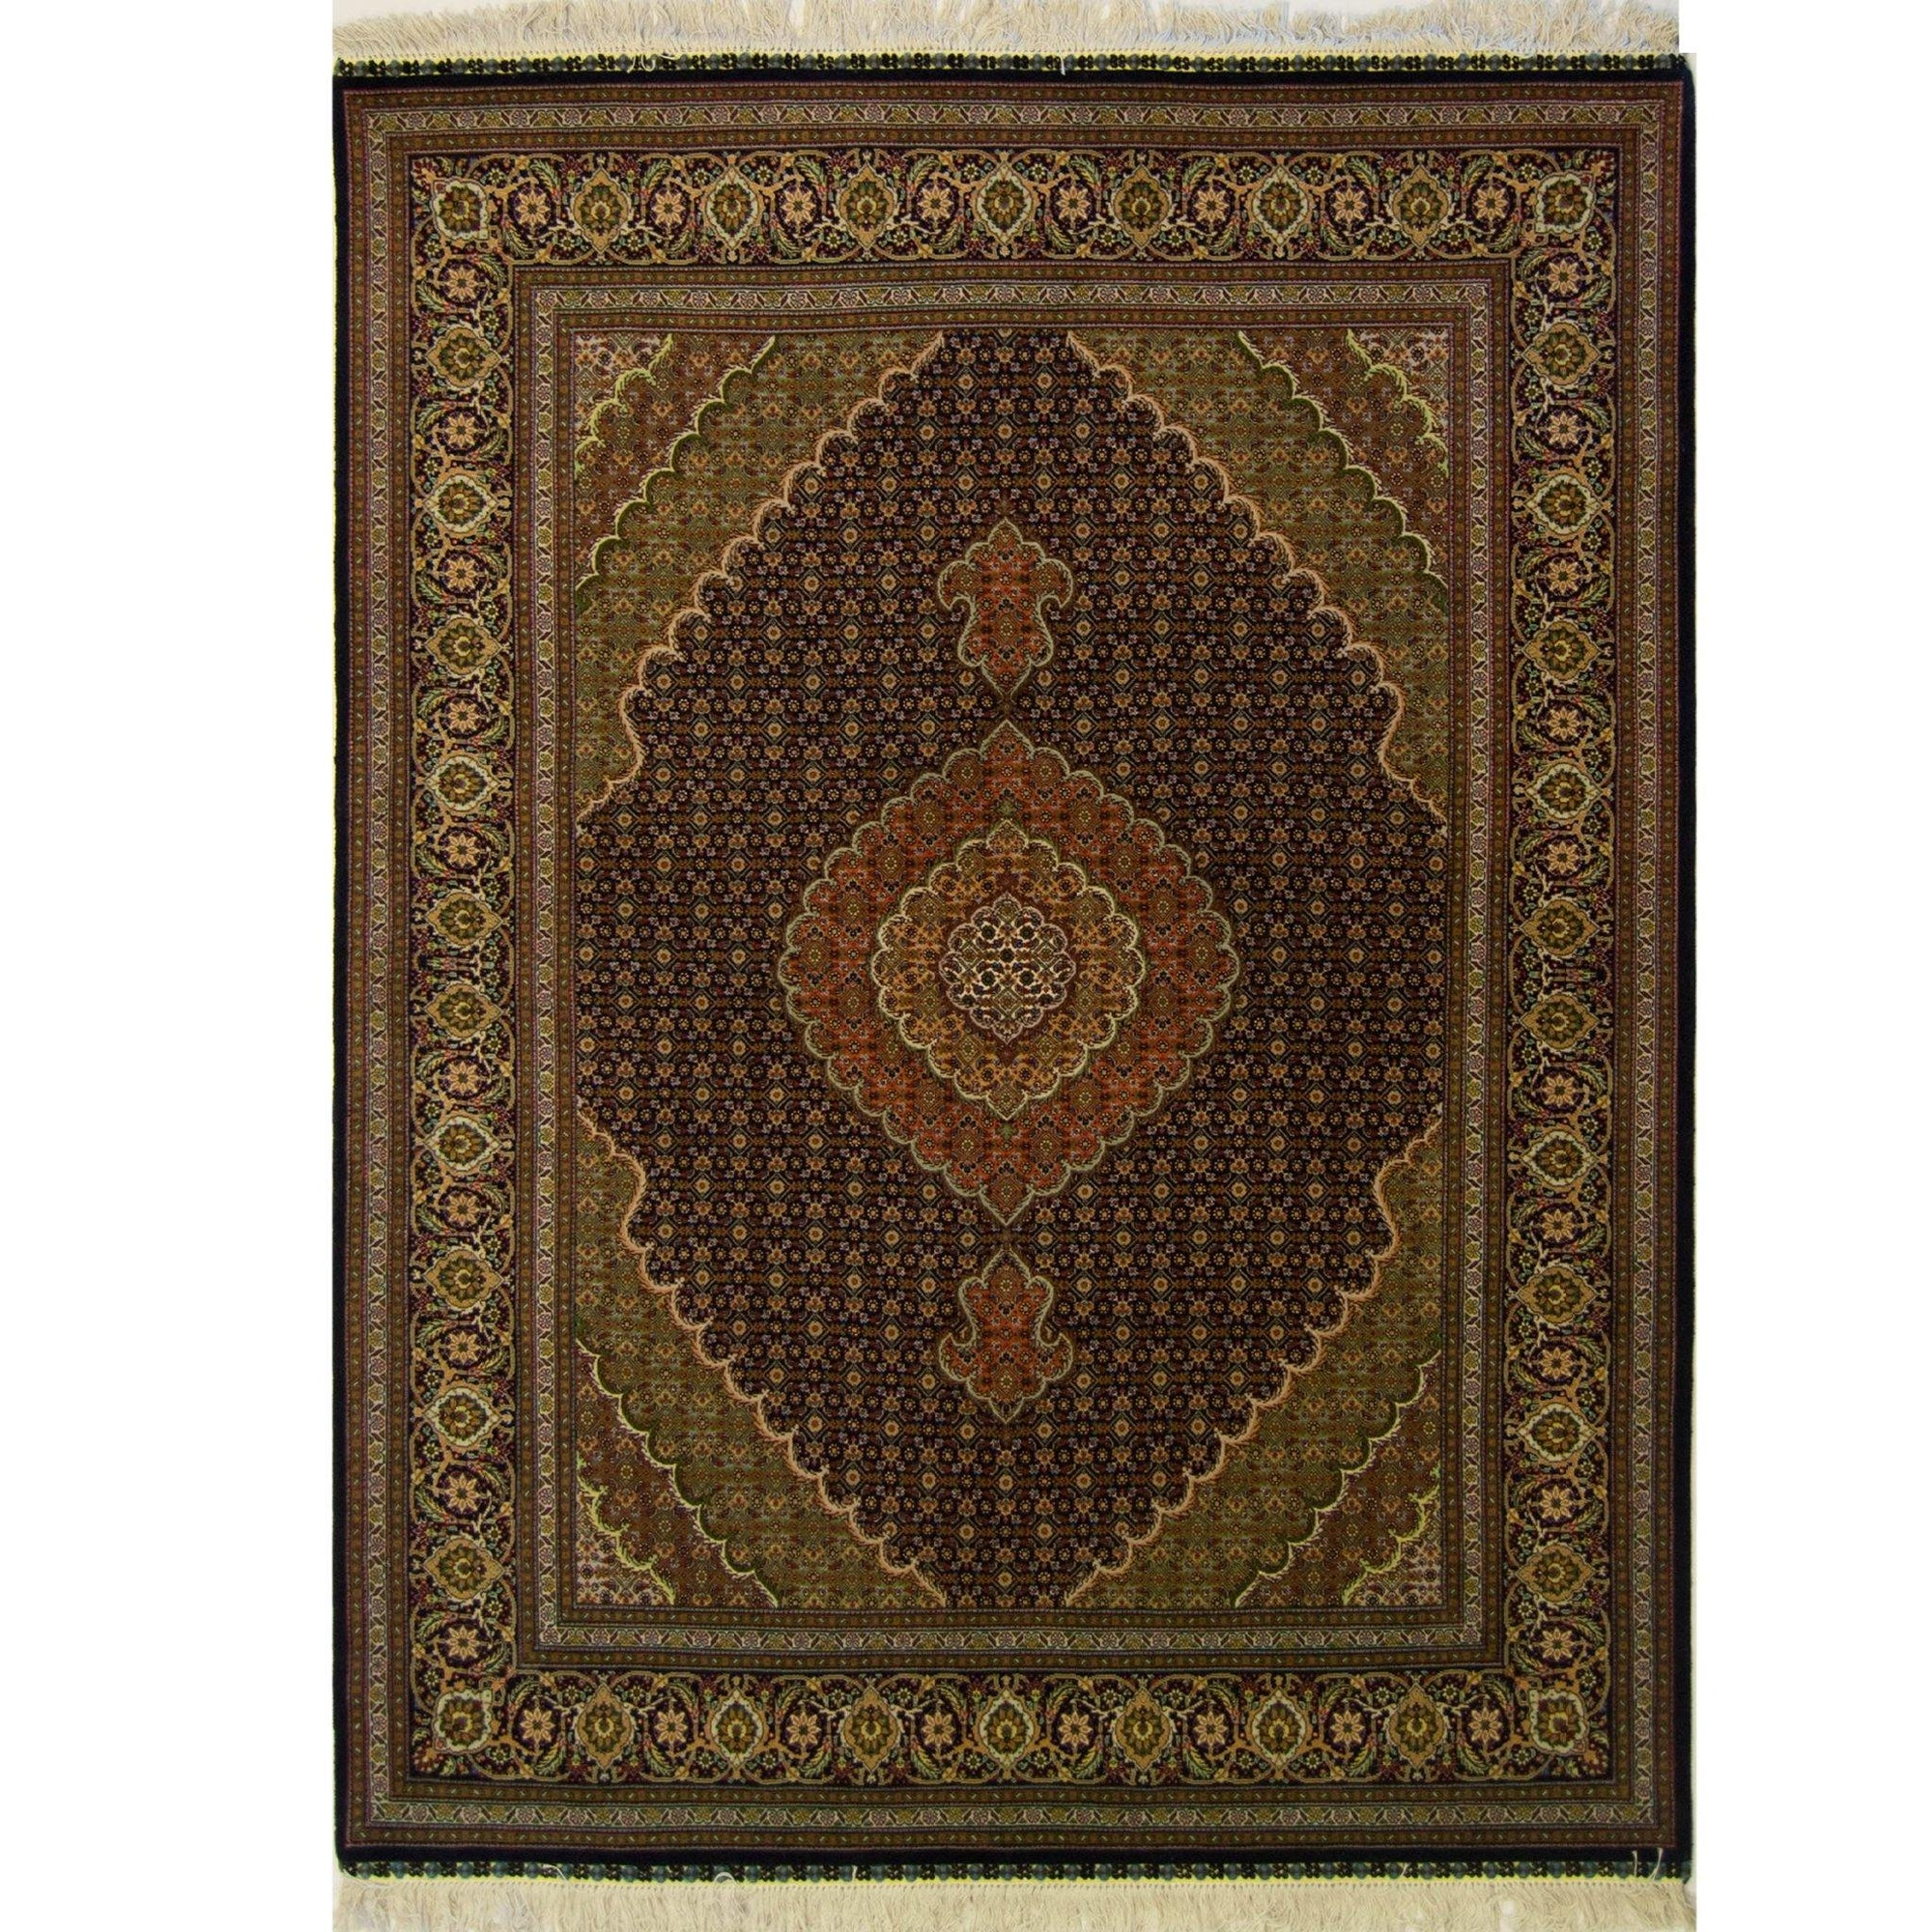 Super Fine Hand-knotted Wool and Silk Tabriz - Mahi Rug 153 cm x 206 cm Persian-Rug | House-of-Haghi | NewMarket | Auckland | NZ | Handmade Persian Rugs | Hand Knotted Persian Rugs